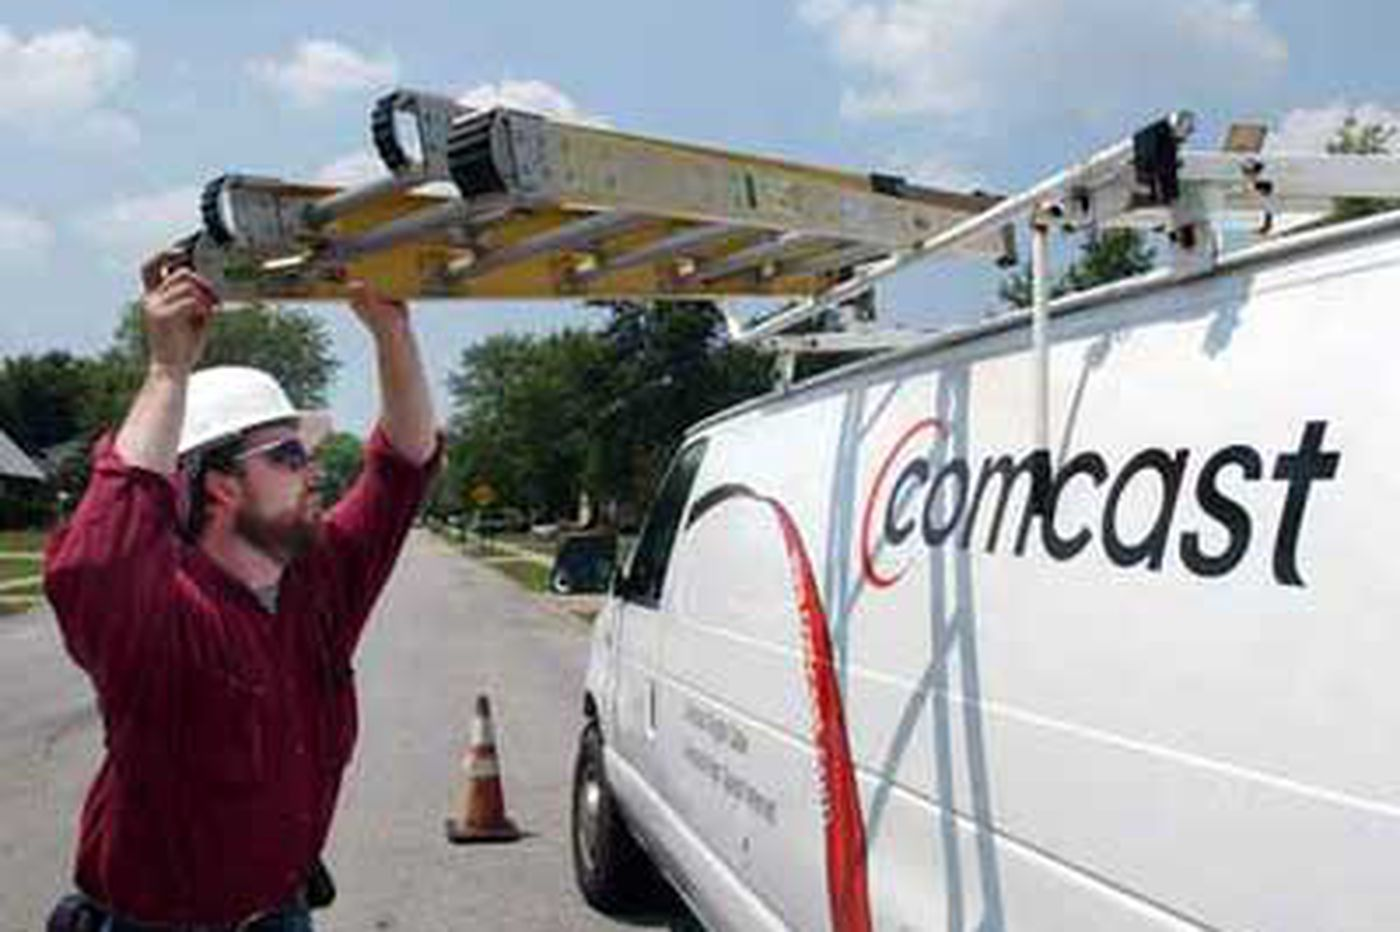 Comcast attacks Verizon's HD claims